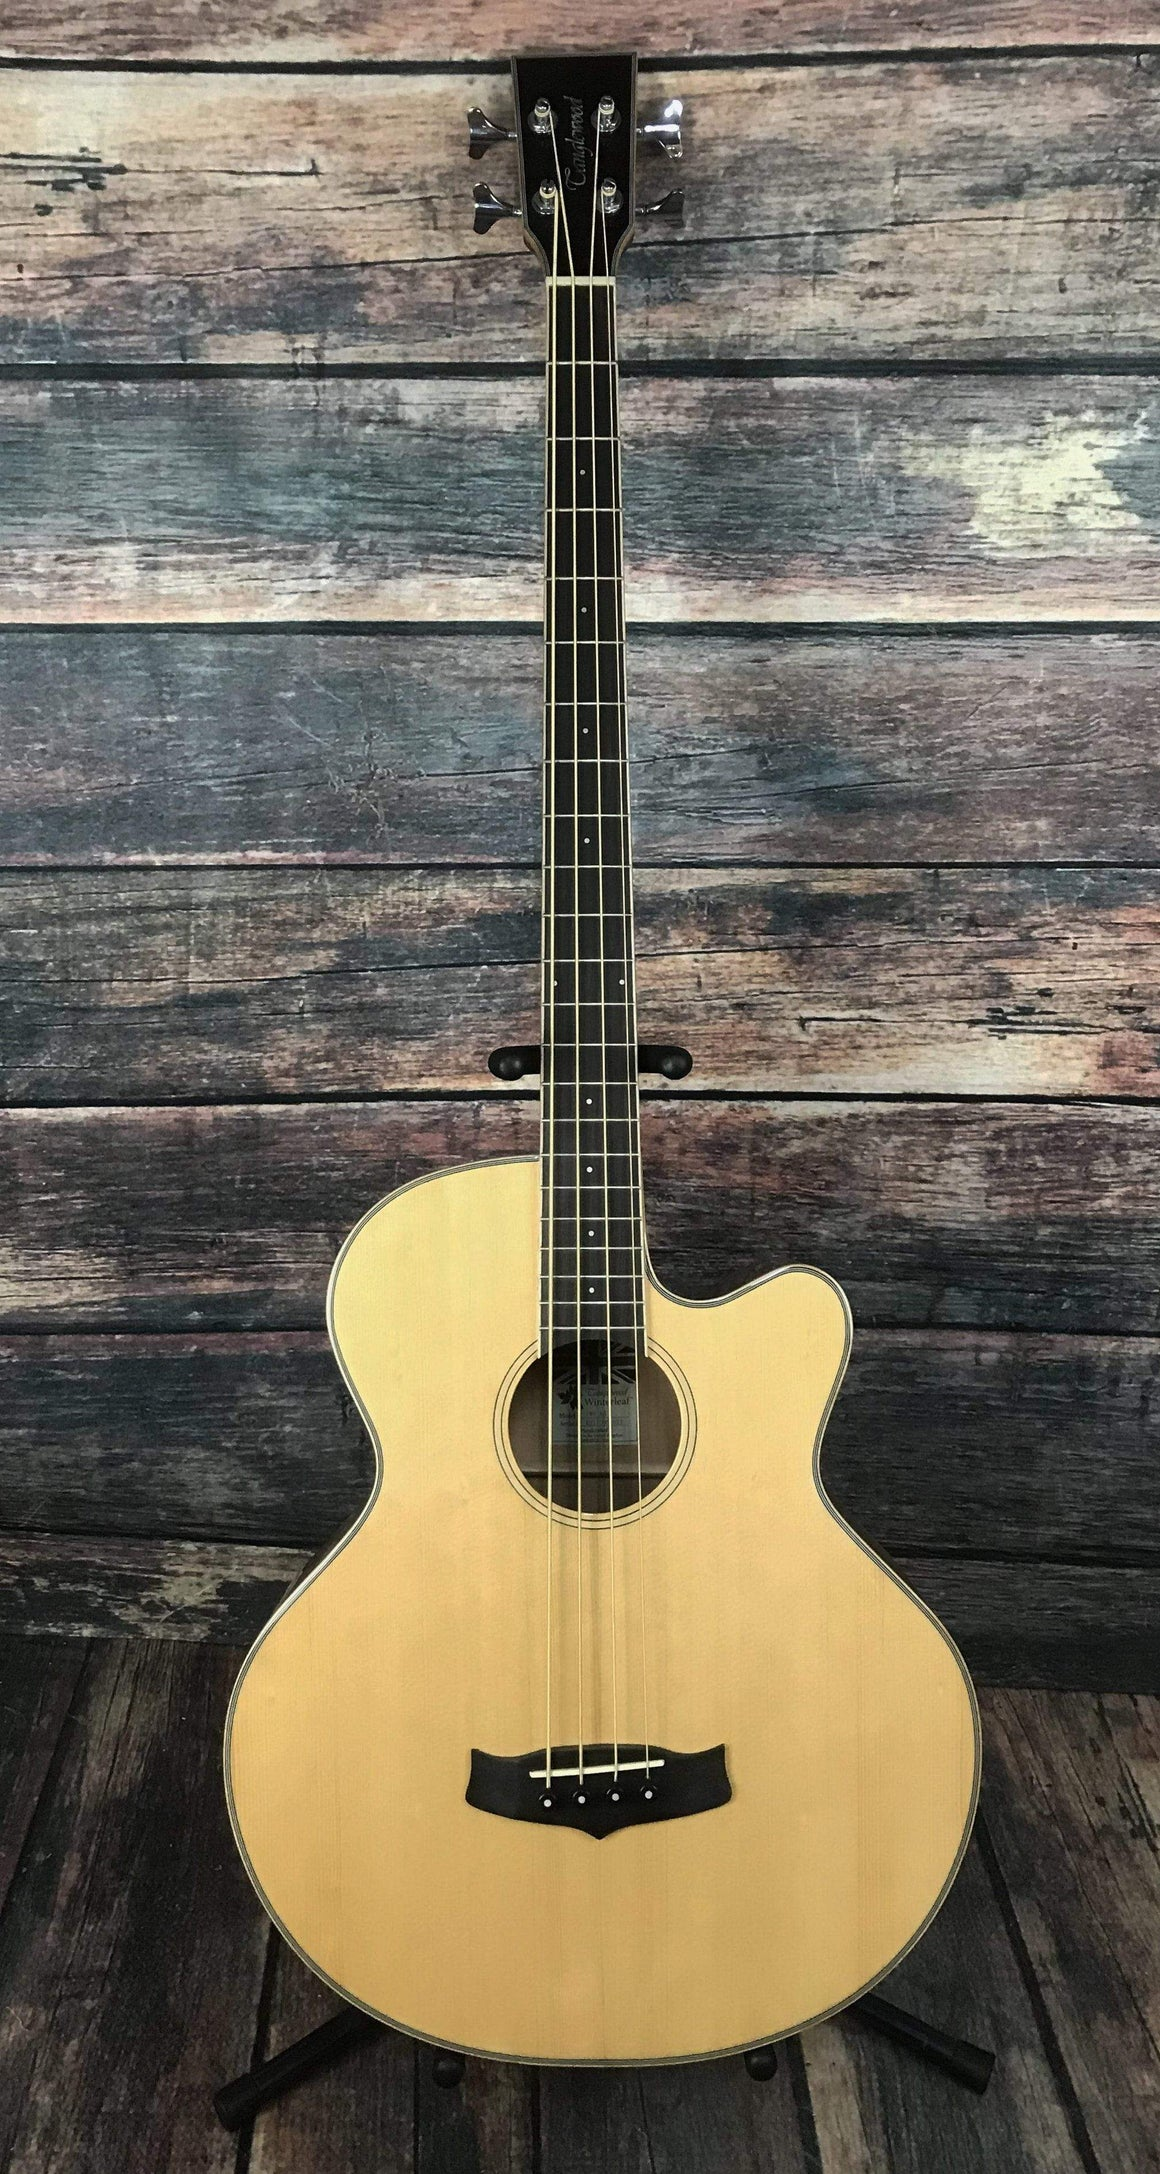 Tanglewood Acoustic Bass Tanglewood WinterLeaf Series TW8AB 4 String Acoustic Electric Bass